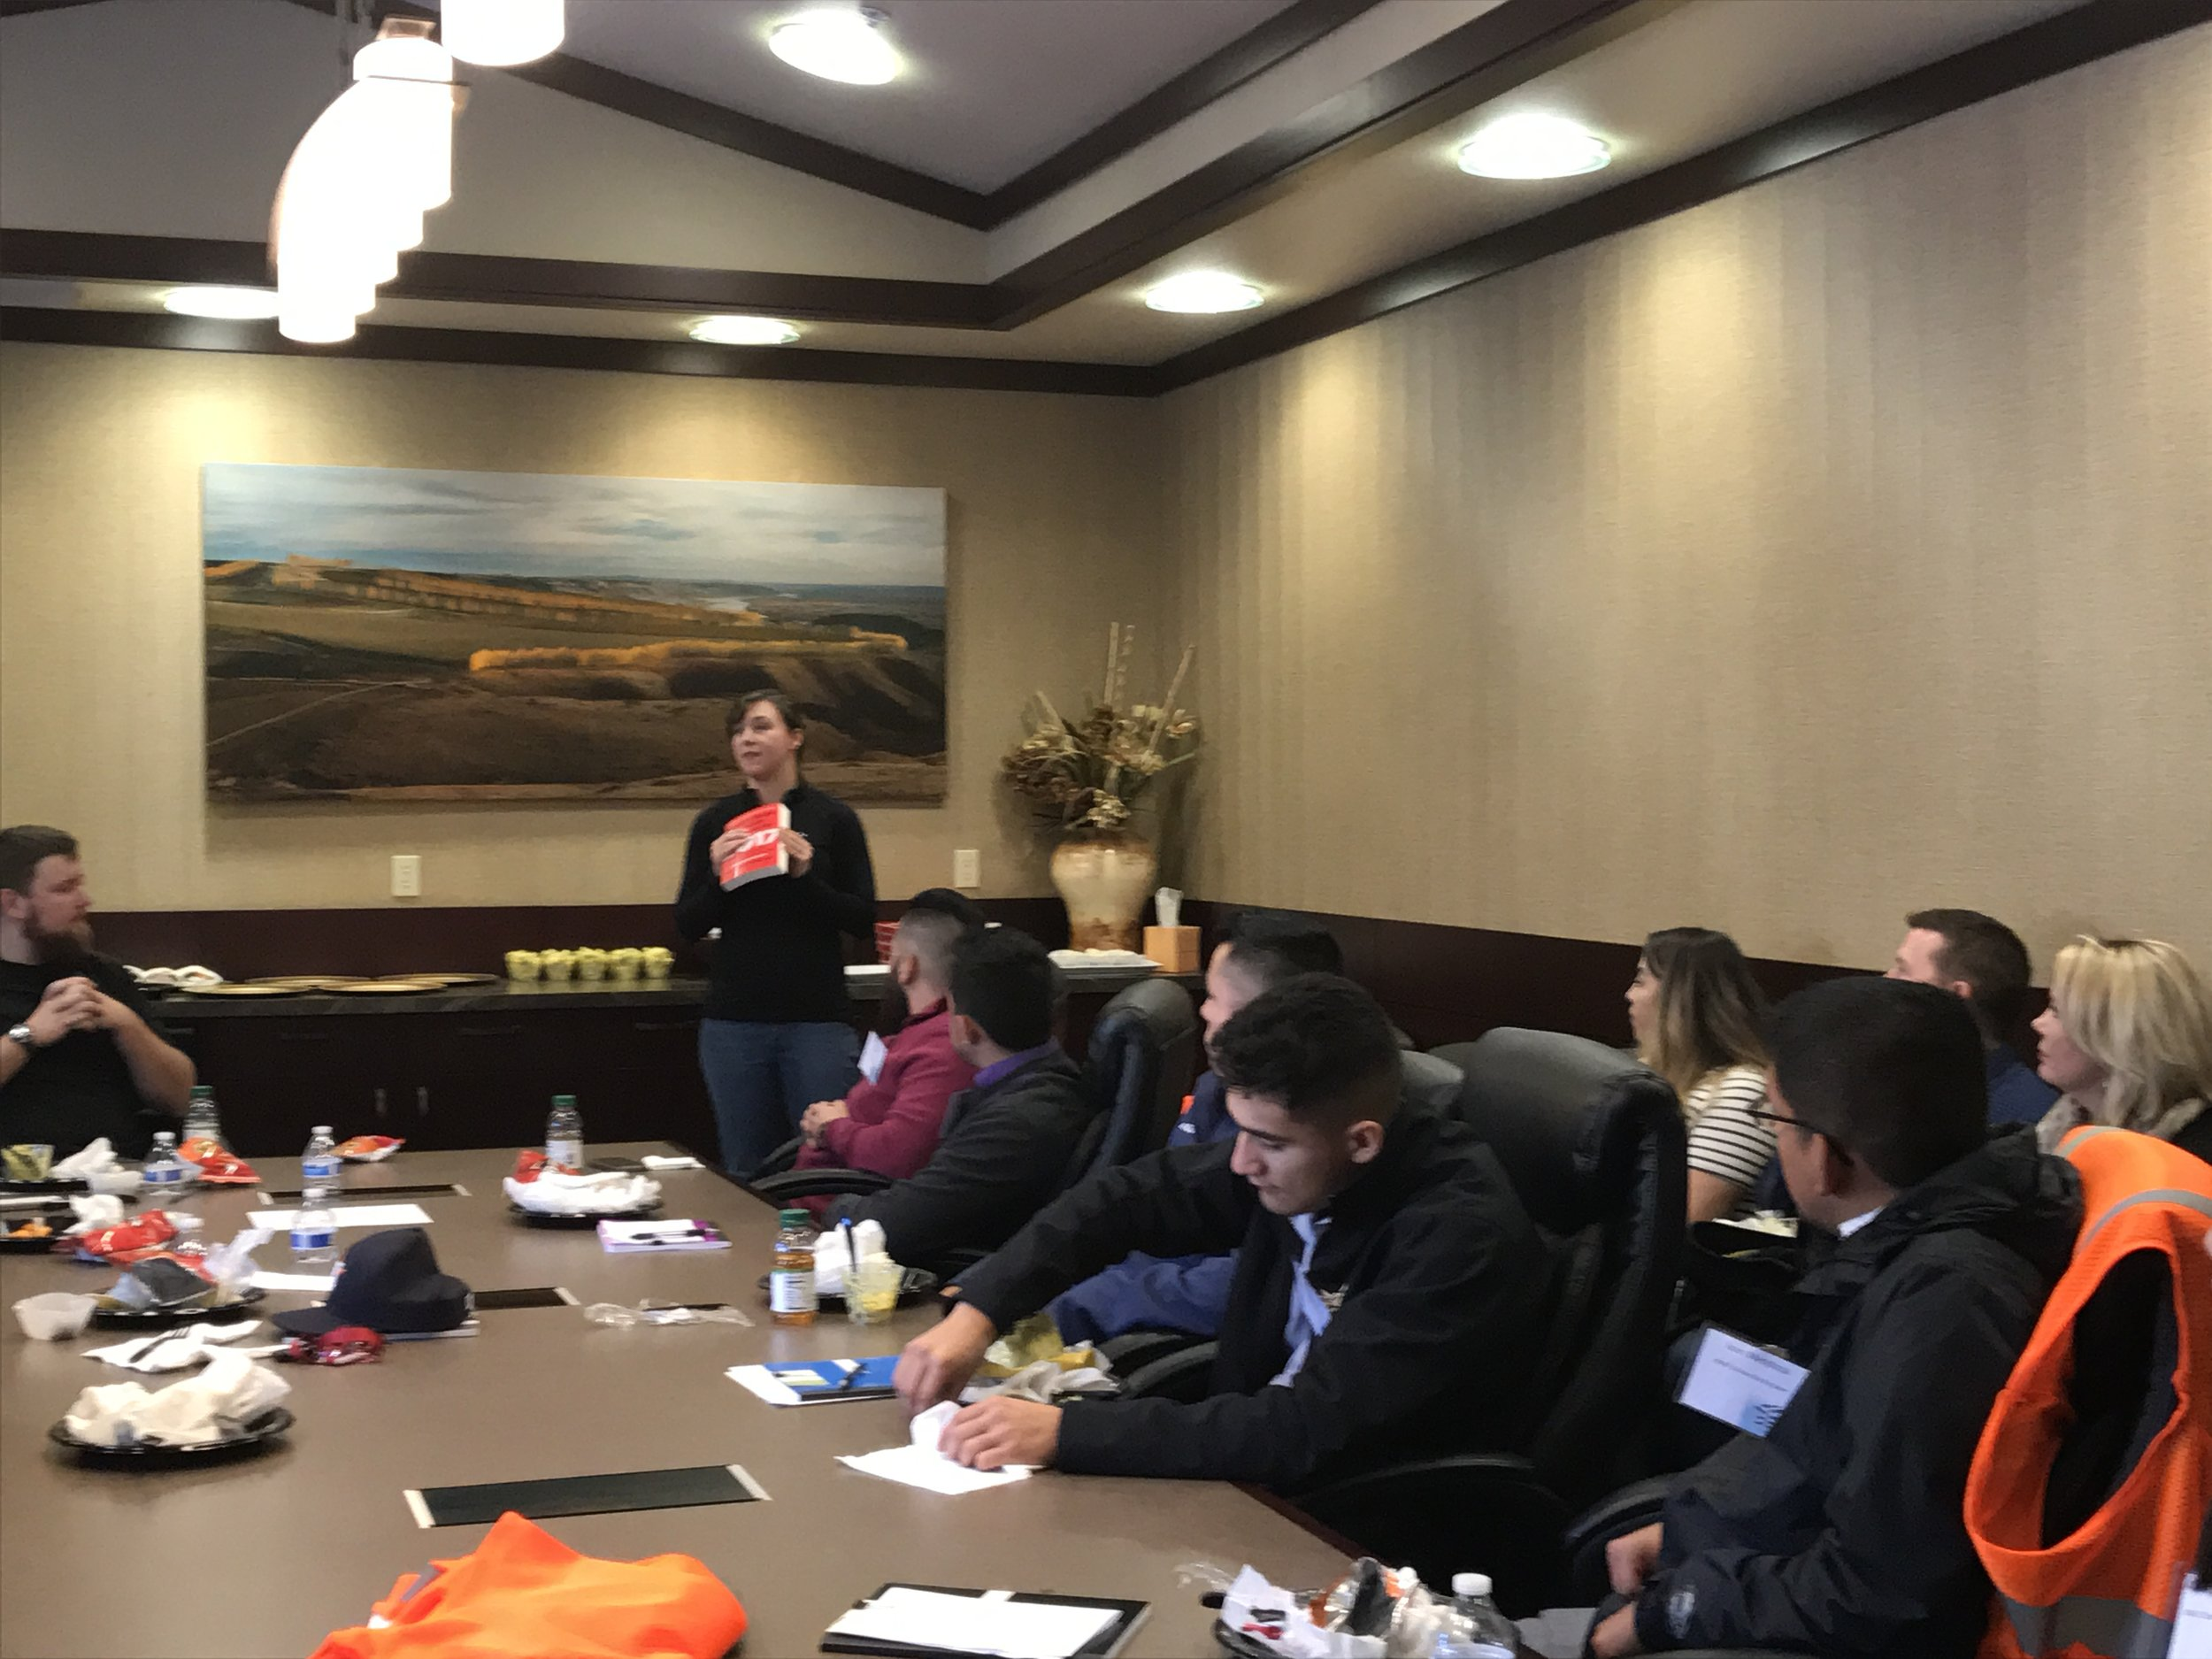 """Over a networking lunch with all of the morning's participants, Allan Brothers' Suzanne Neiman introduced a book that was gifted to each student by Allan Brothers titled, """"What Color in Your Parachute""""."""